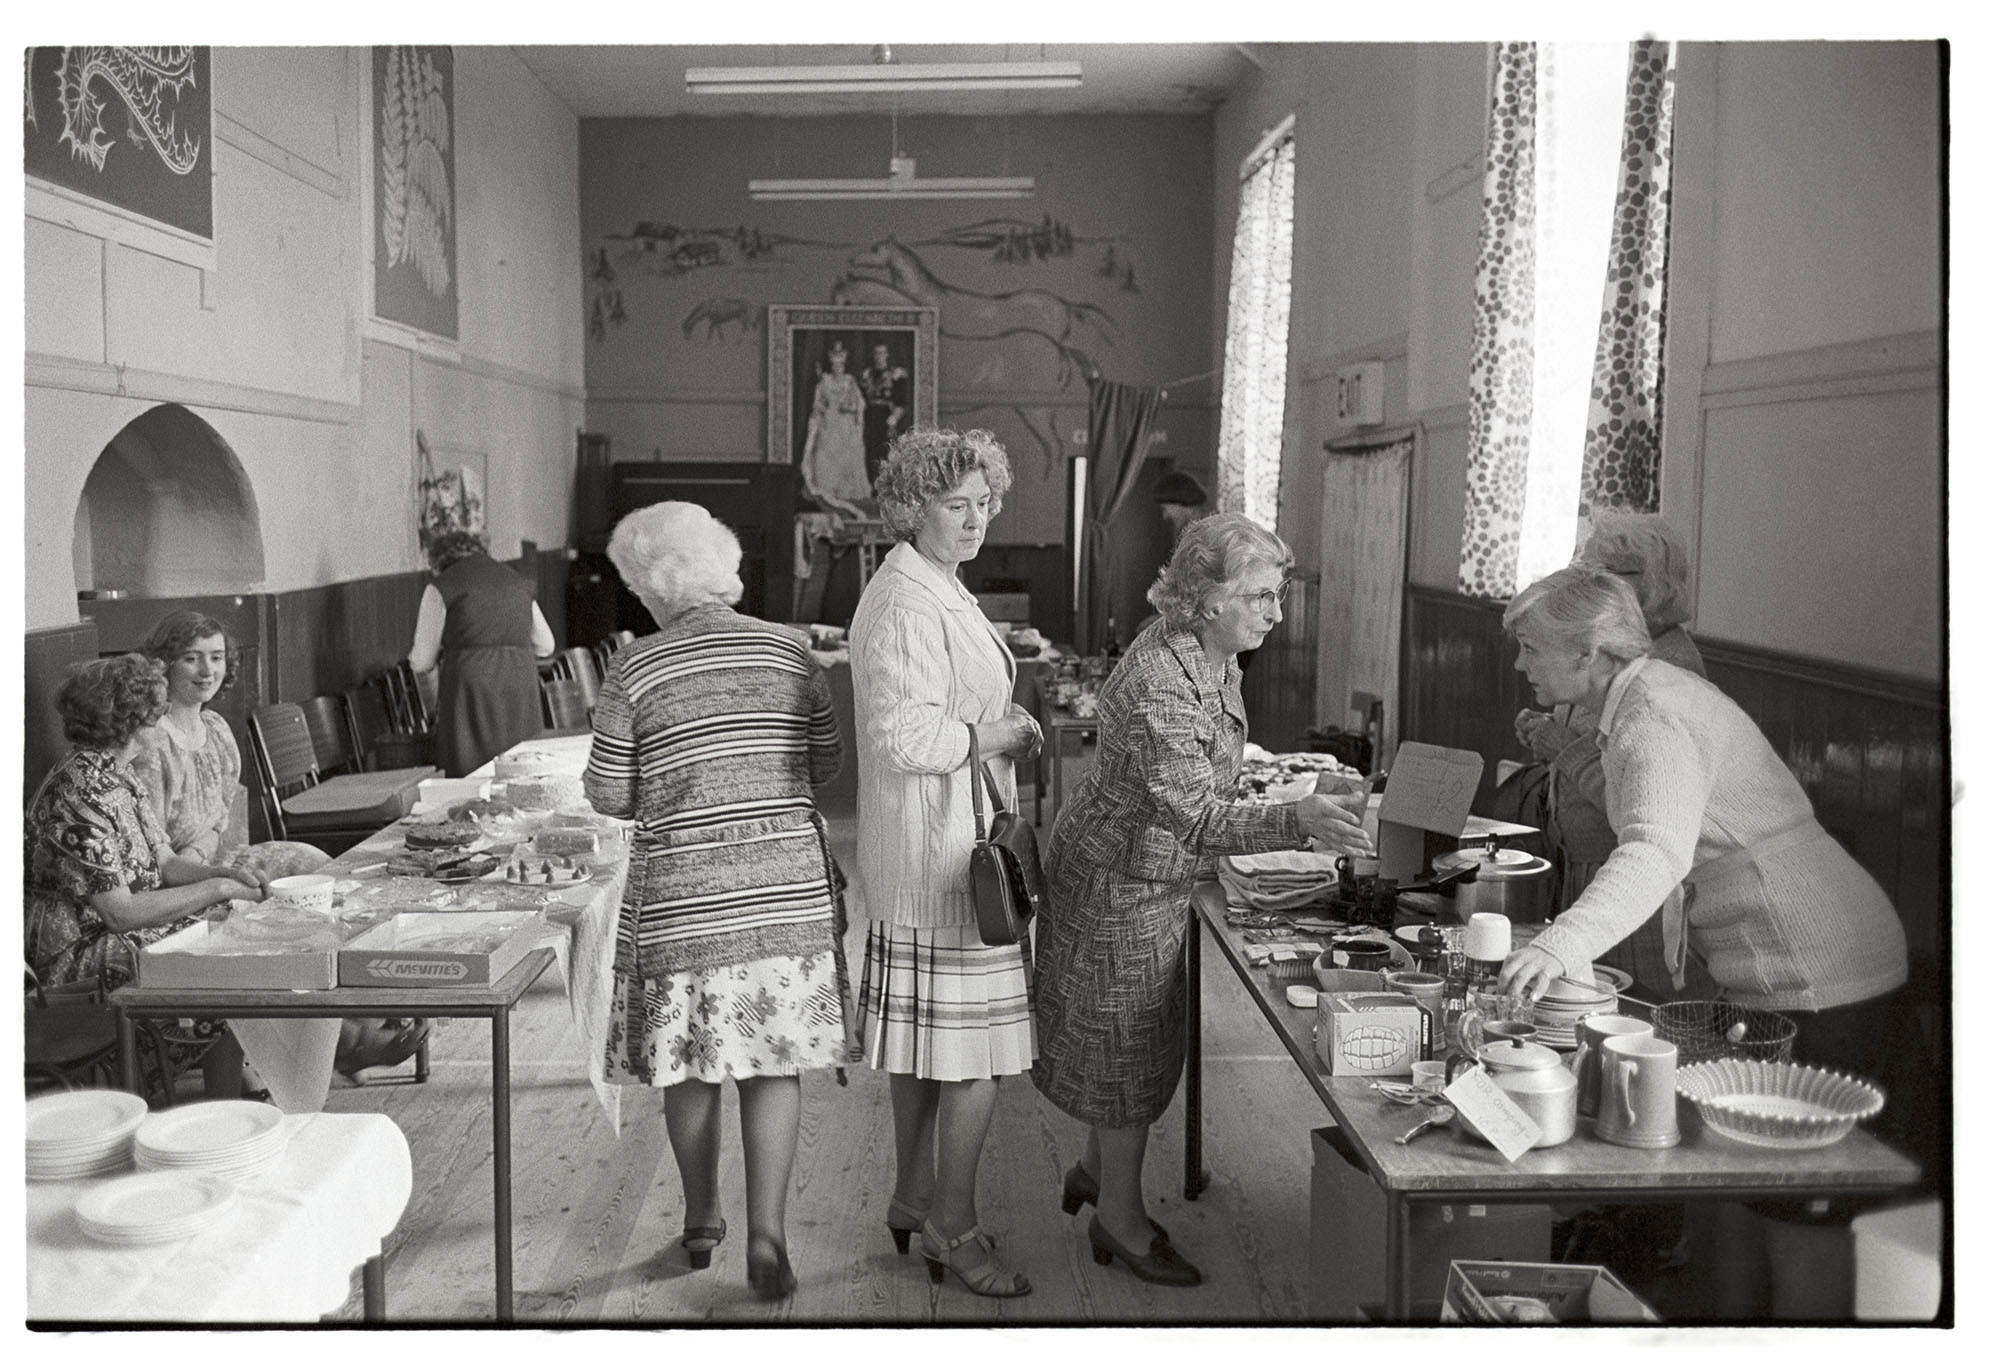 Stalls in village hall, women looking at cakes and produce. Dresses and cardigans. <br /> [Women looking at cake and bric-a-brac stalls at Roborough Fair in Roborough Village Hall. The walls are decorated with pictures, including a royal portrait at the far end of the hall.]